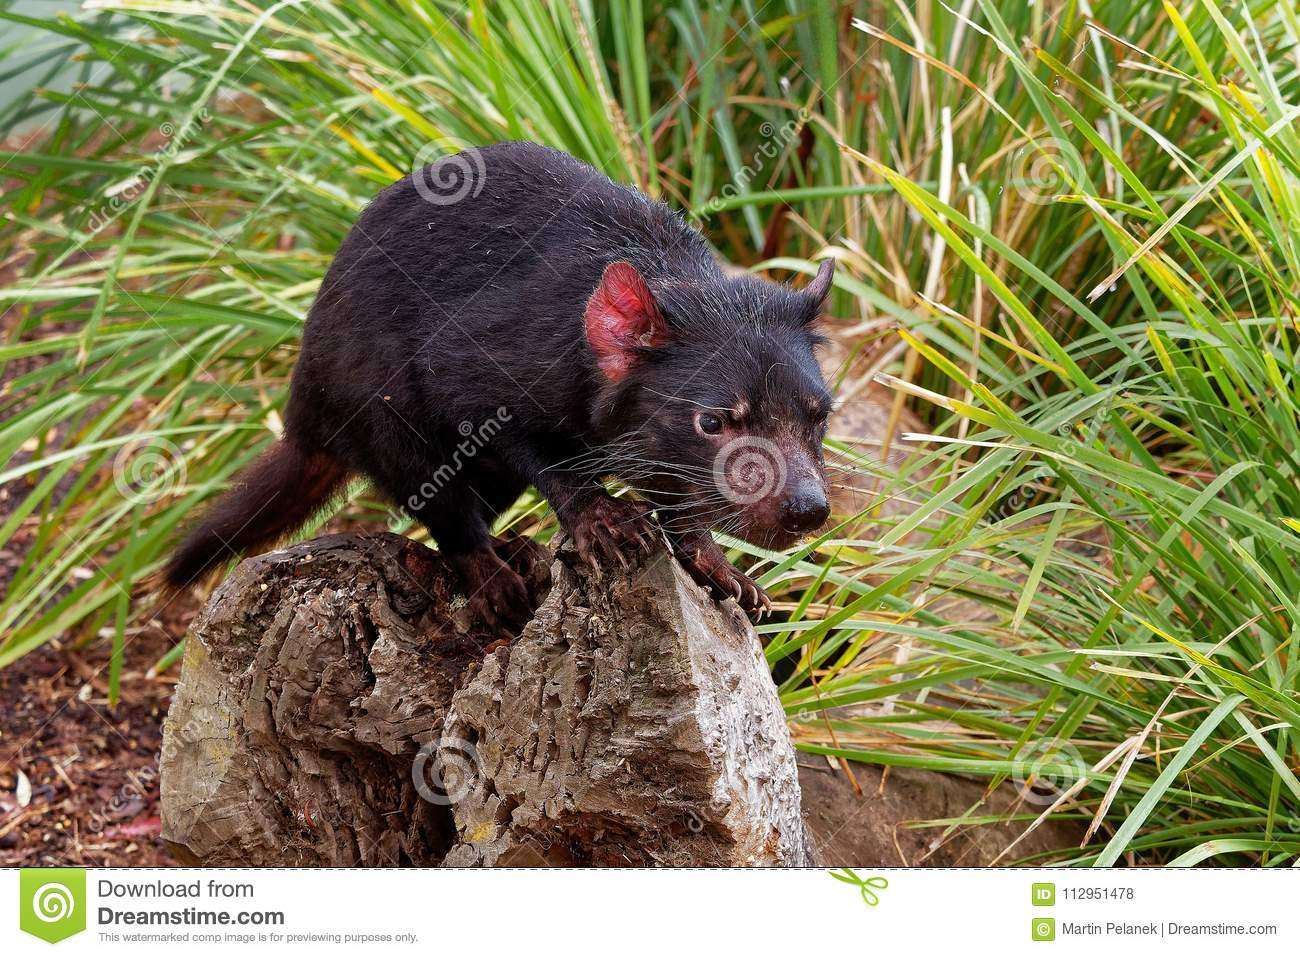 Sarcophilus harrisii - Tasmanian Devil in the night and day